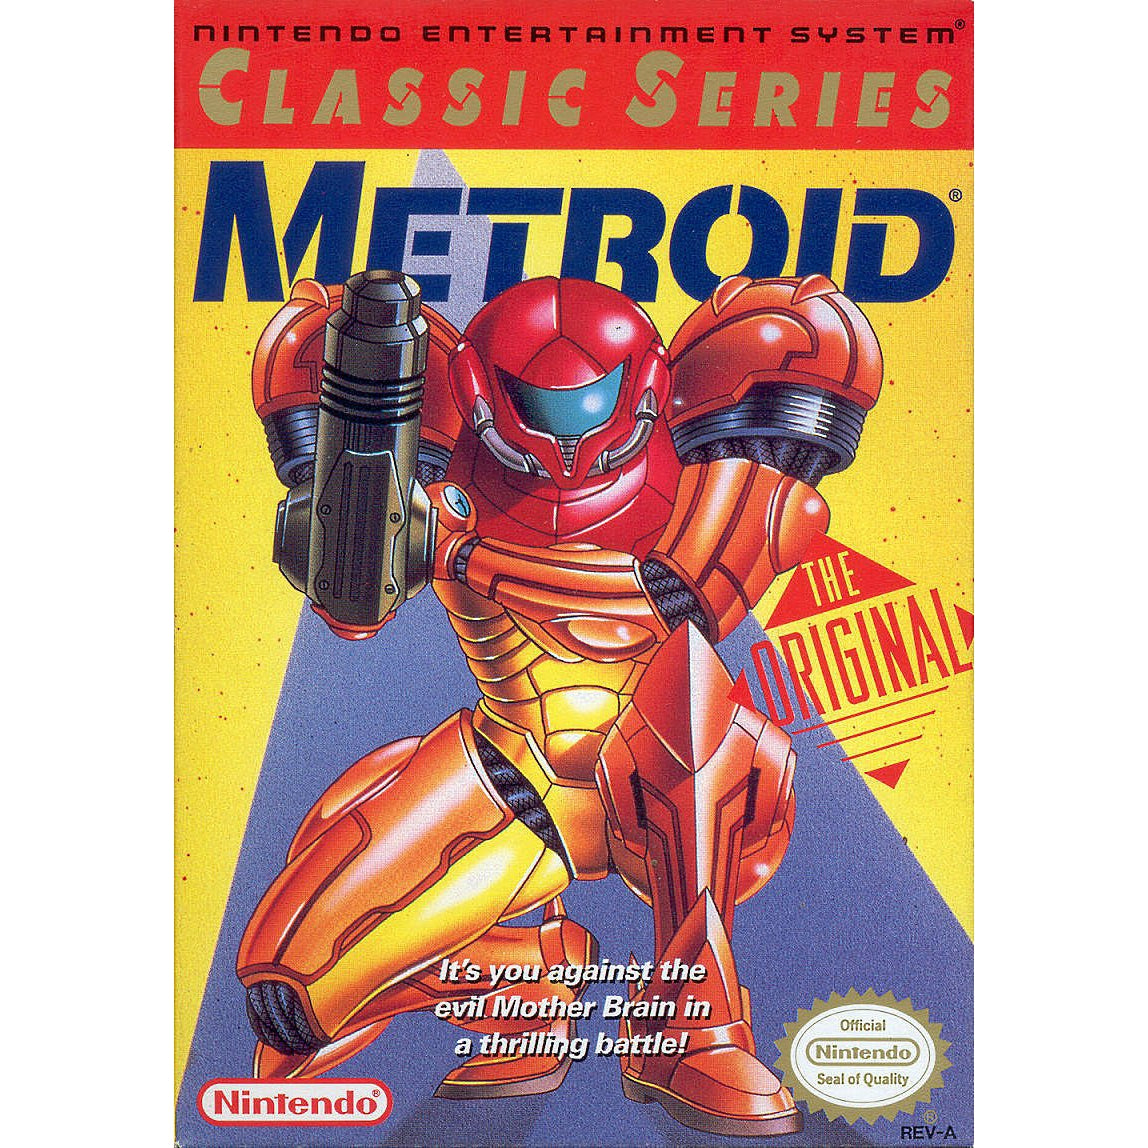 Metroid (Yellow Label) - Authentic NES Game Cartridge - YourGamingShop.com - Buy, Sell, Trade Video Games Online. 120 Day Warranty. Satisfaction Guaranteed.